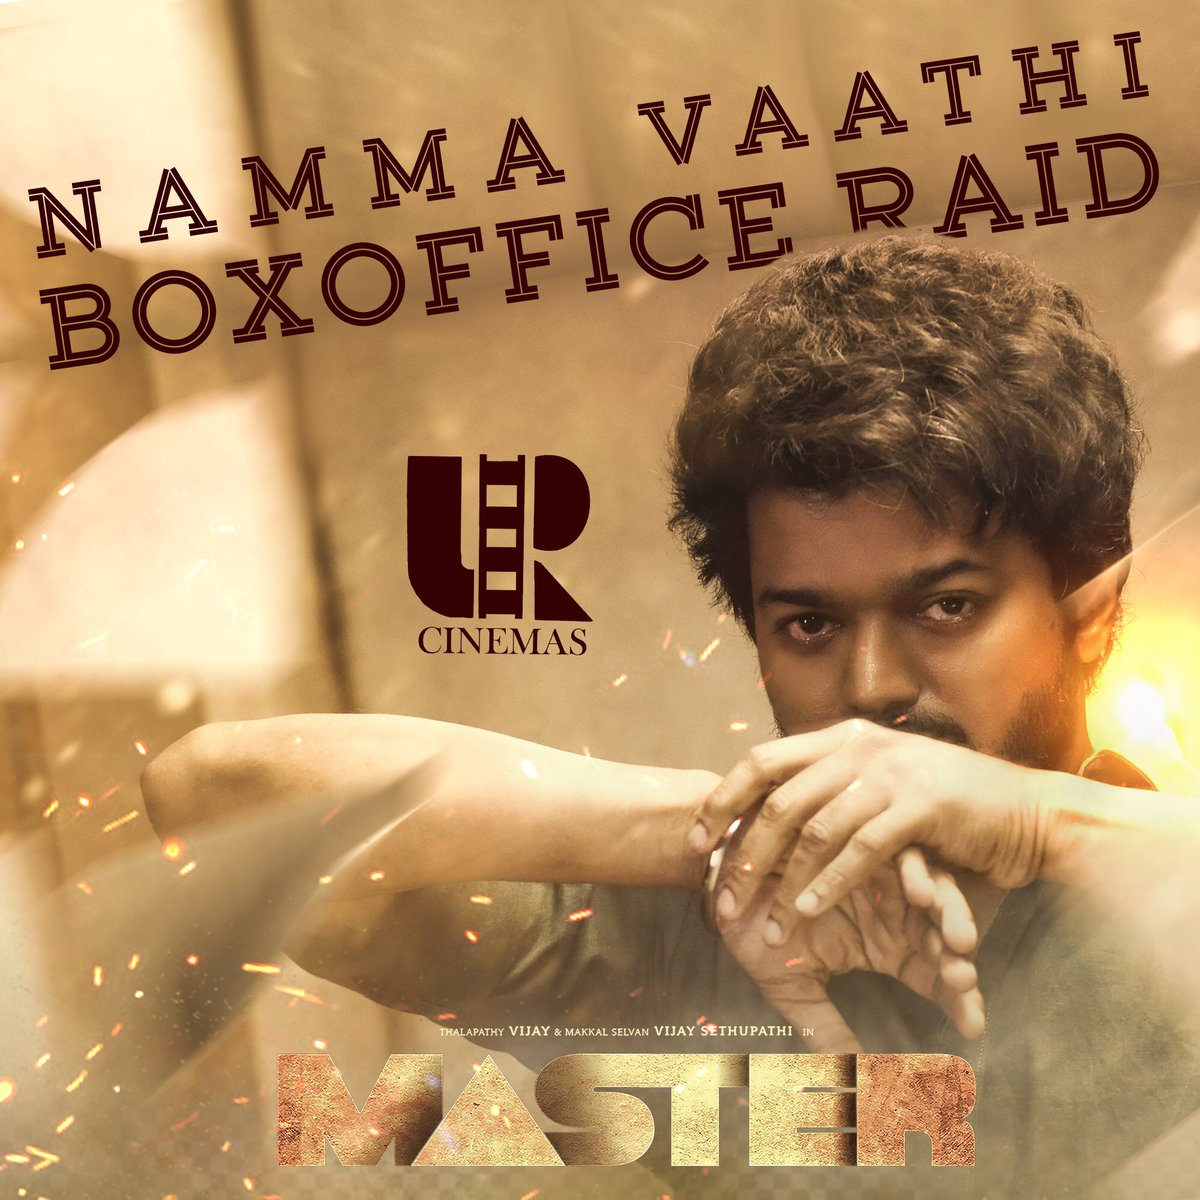 52/52 housefull shows for first 5 days of #MasterPongal This is what you call as a Monstrous opening 🔥 #Thalapathy shattering records for fun 💥 Annan vandha atom bomb'u Dummu 💣 Congratulations on the massive success @XBFilmCreators @Lalit_SevenScr @Jagadishbliss 🙏🏽 #VaathiRaid